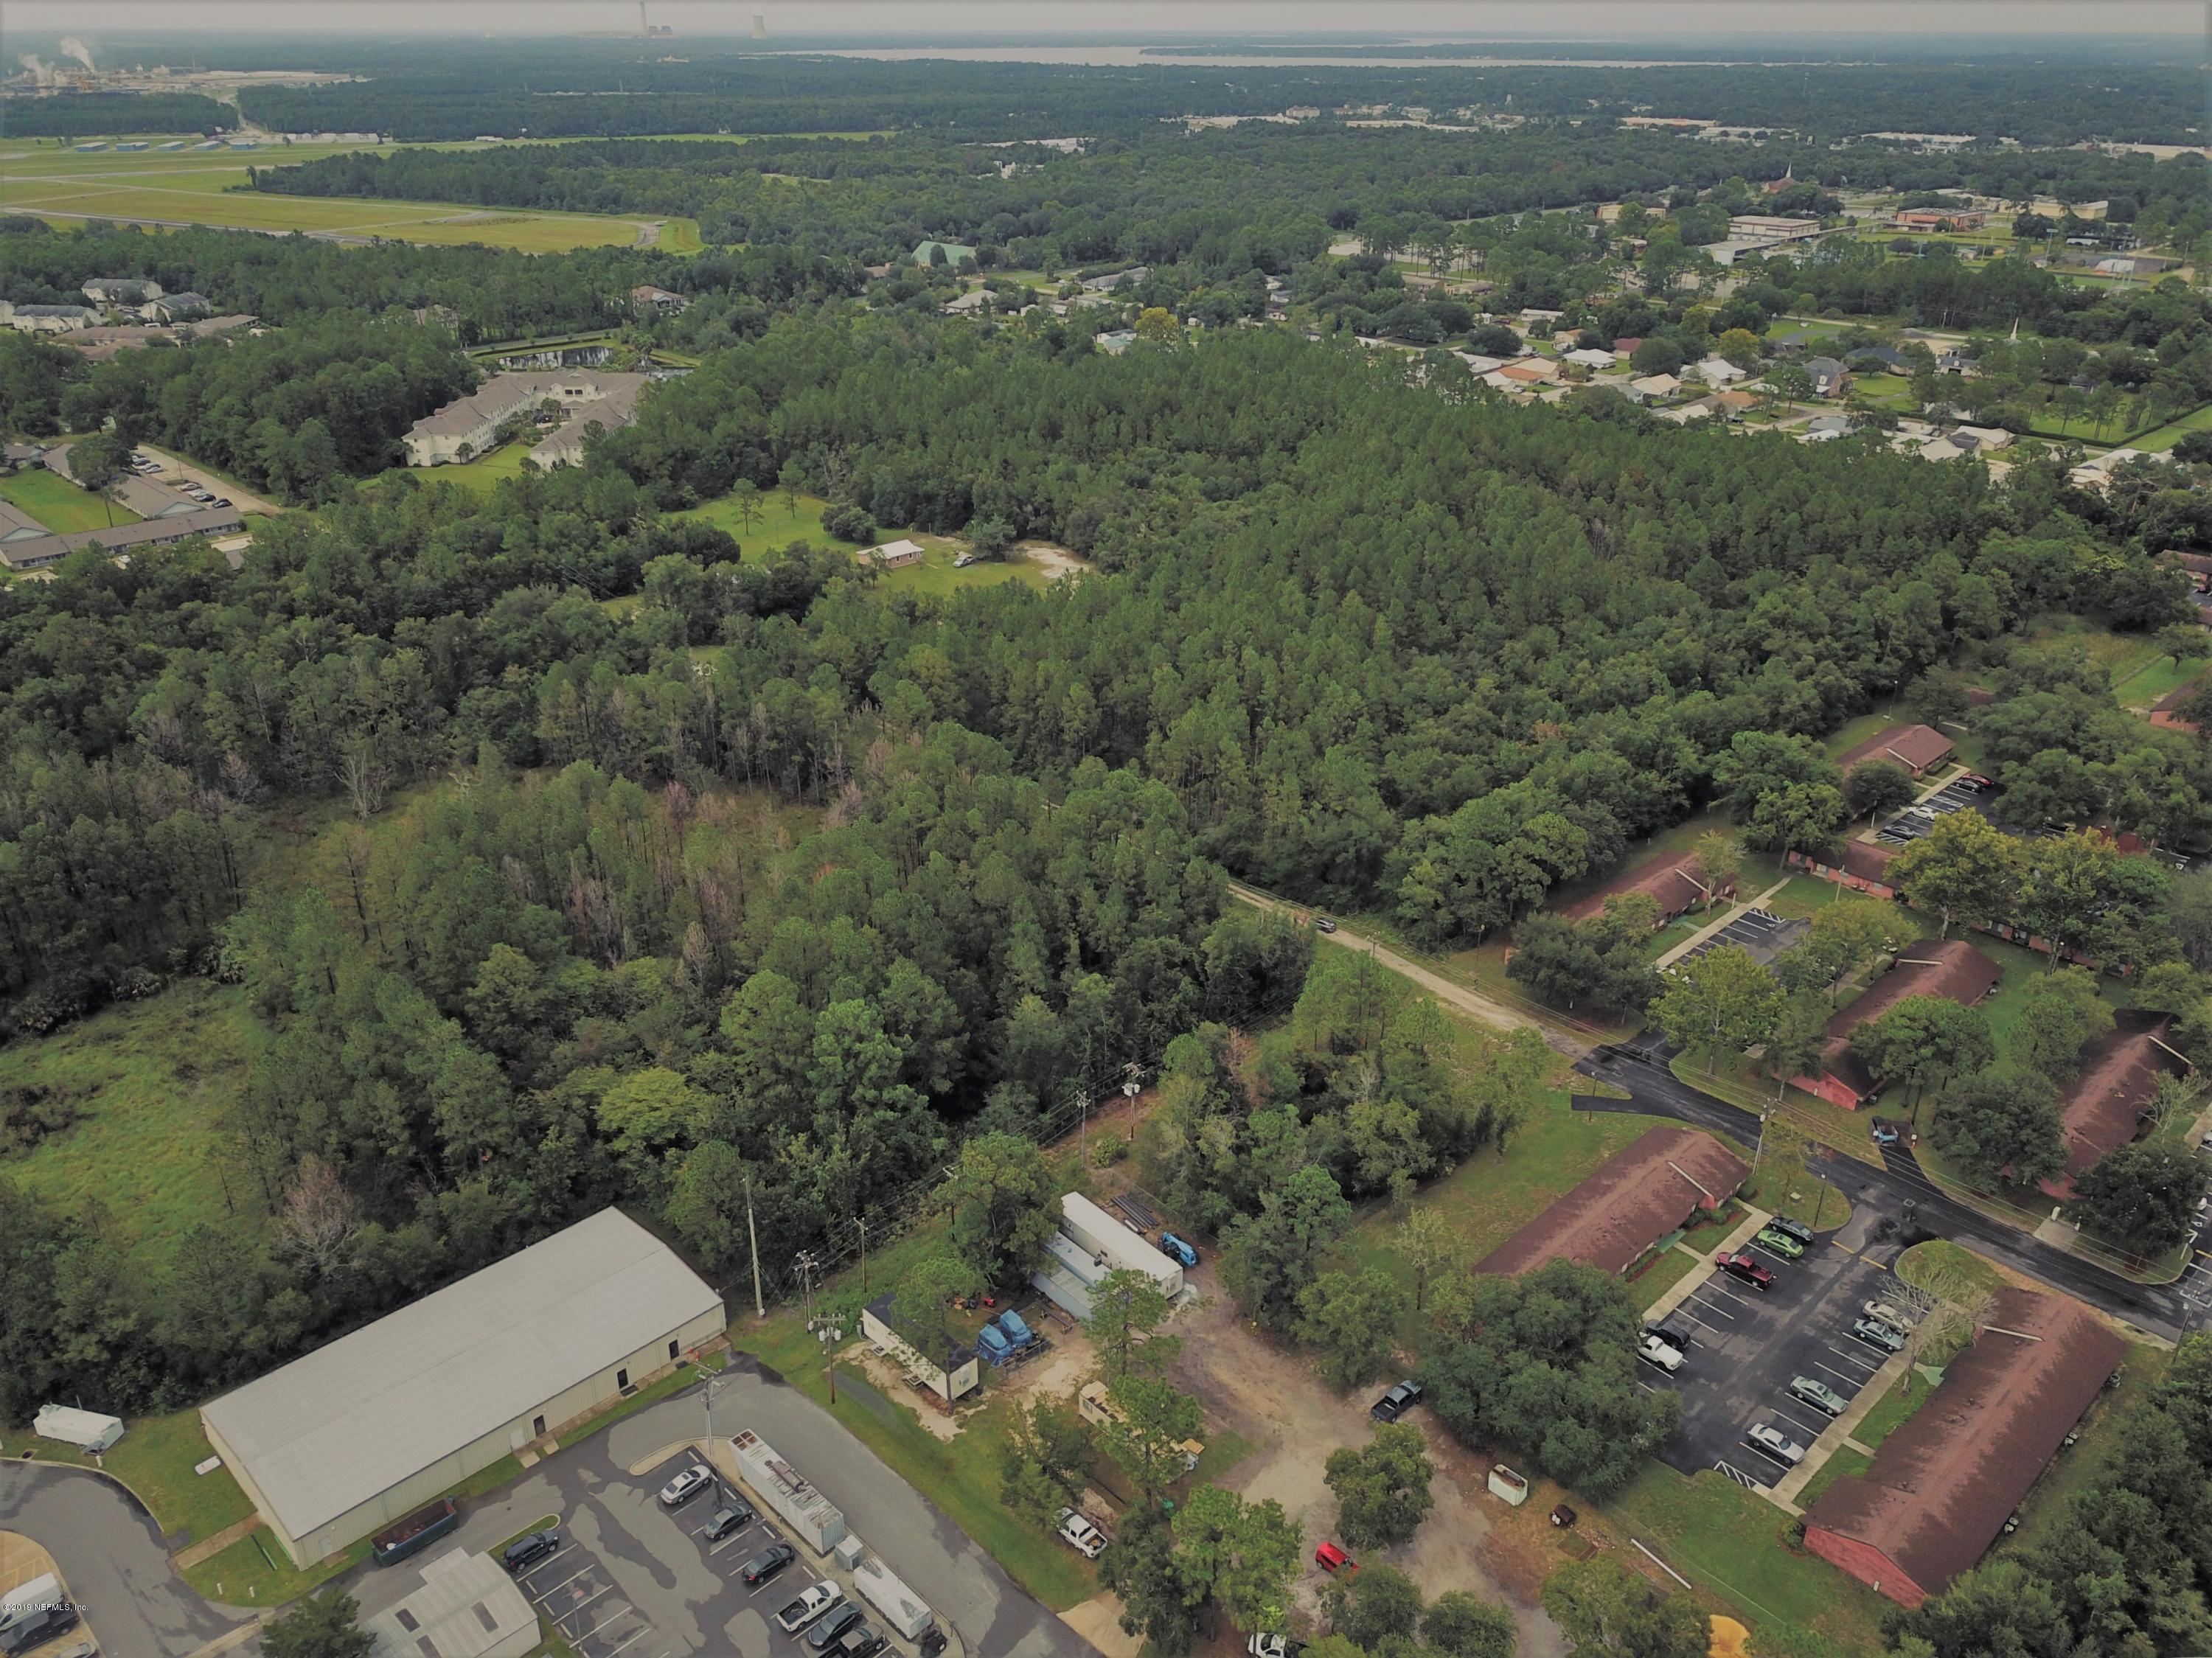 0 MCLAURY, PALATKA, FLORIDA 32177, ,Vacant land,For sale,MCLAURY,637440